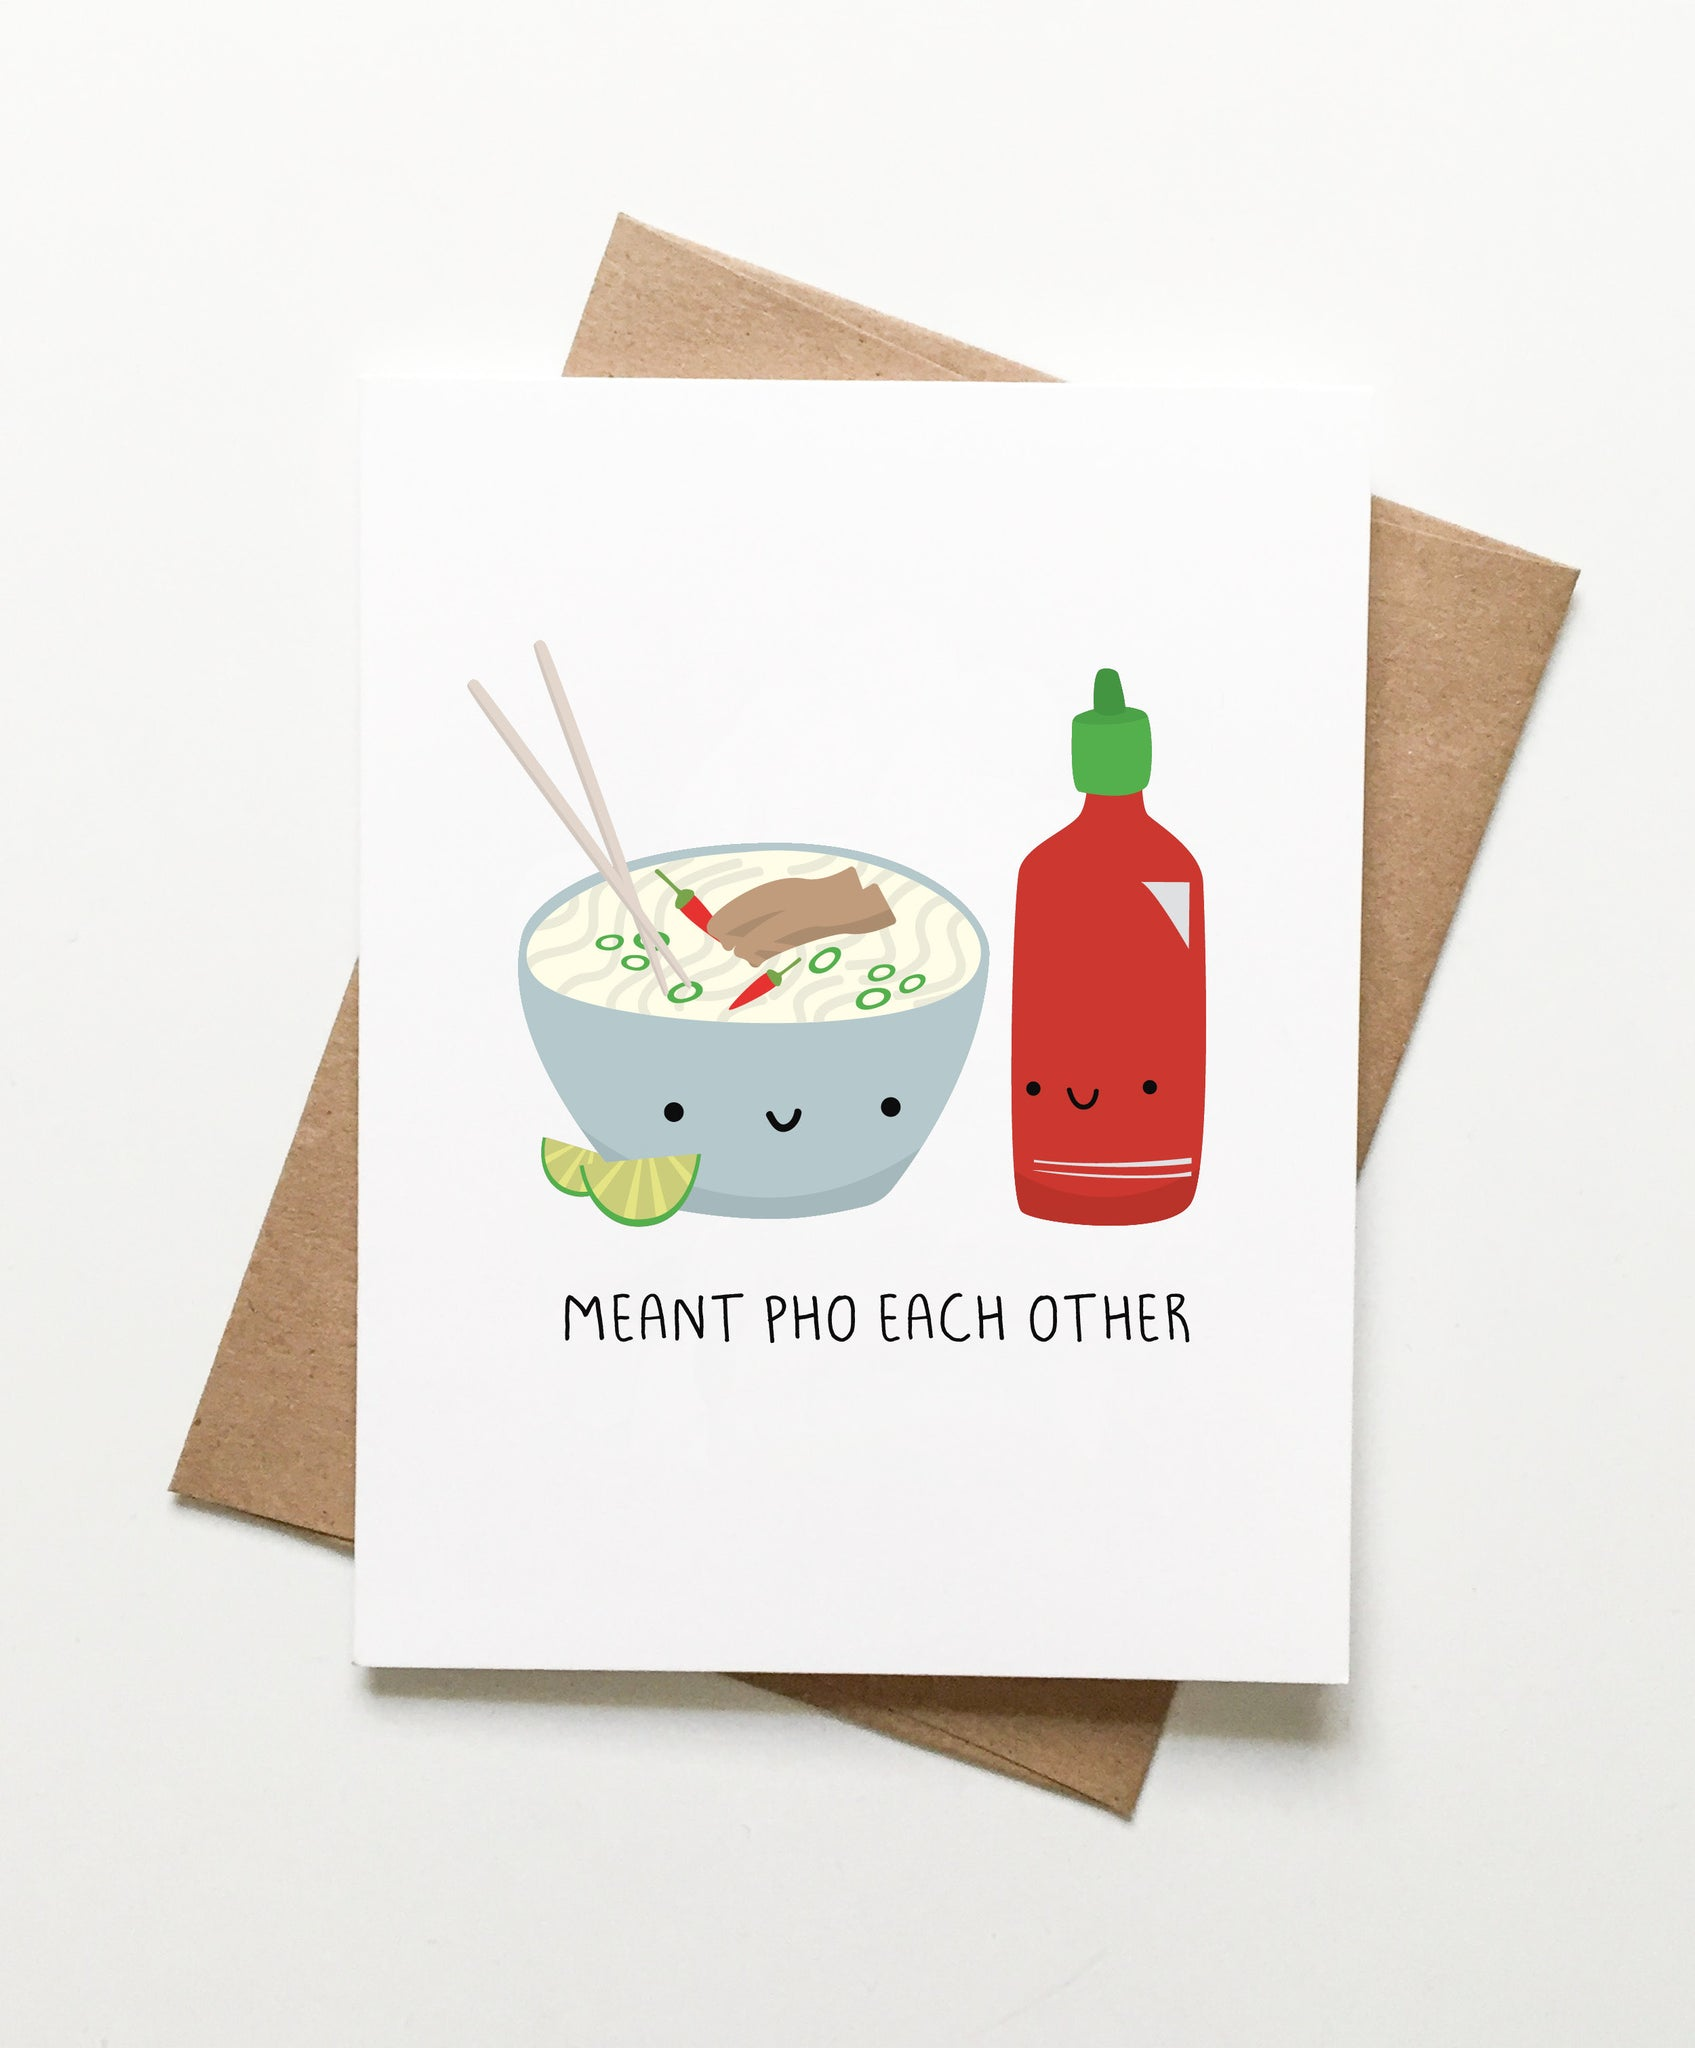 Le Trango Studios - Meant Pho Each Other Card